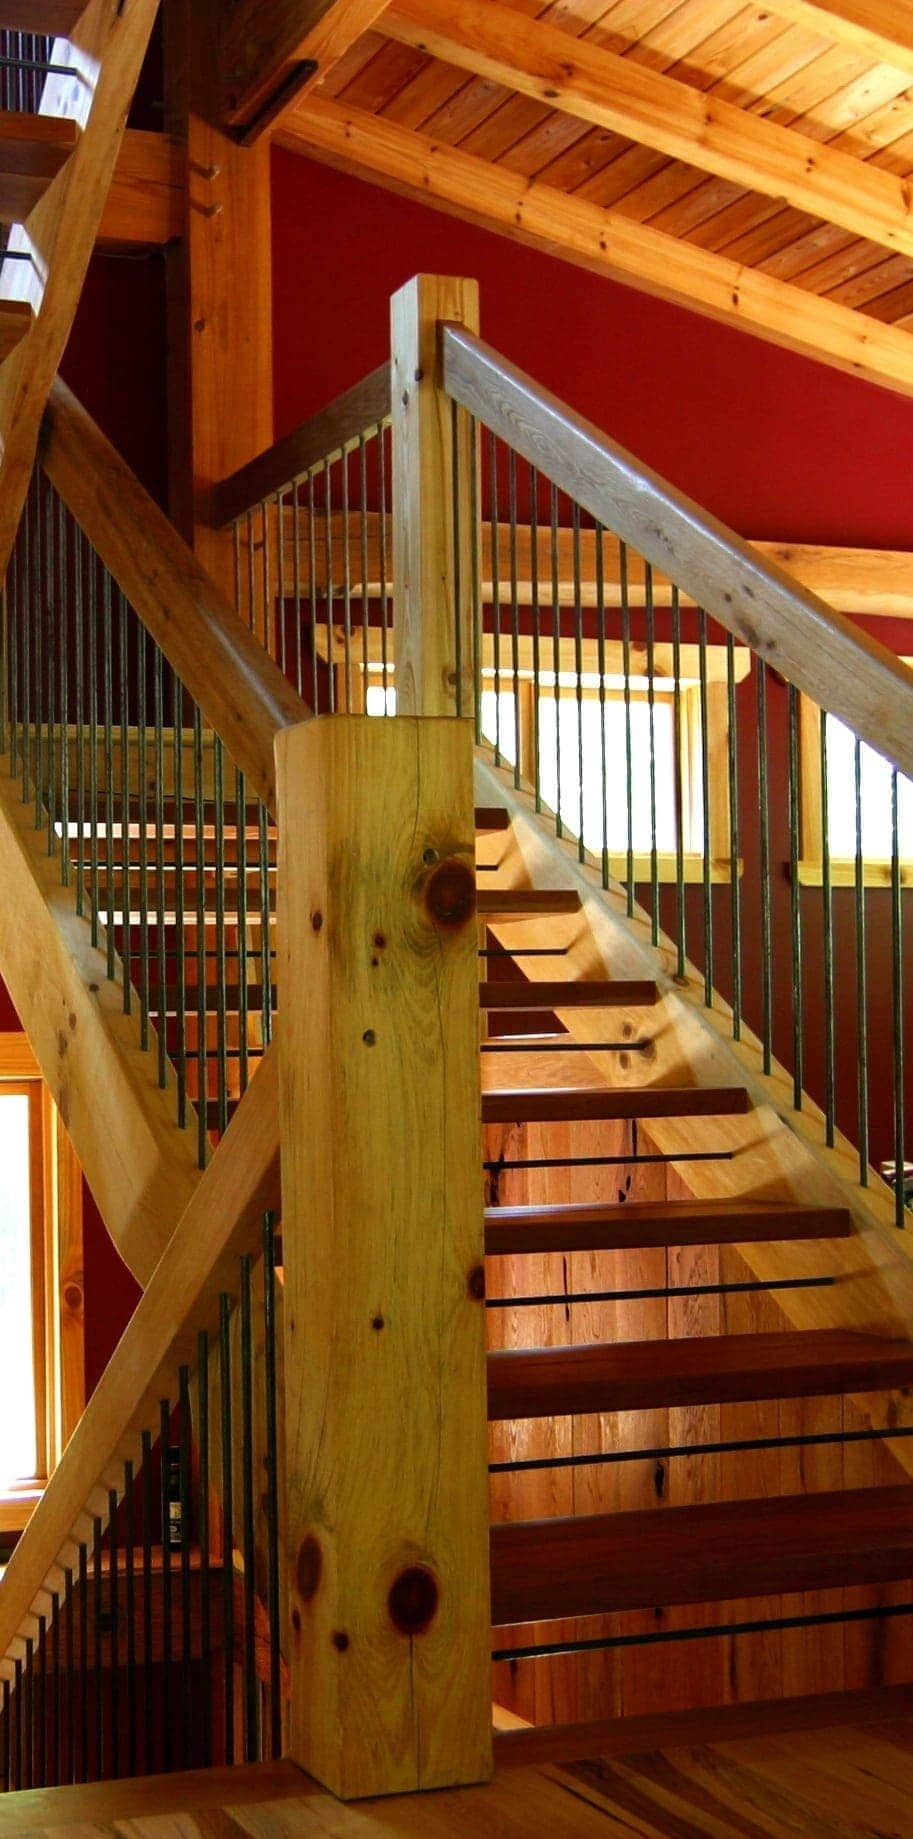 Types Of Timber Frame Stair Systems Timber Frame Hq | Types Of Wooden Stairs | Rustic Wooden | Storage | Separated | Staircase | Vertical Wood